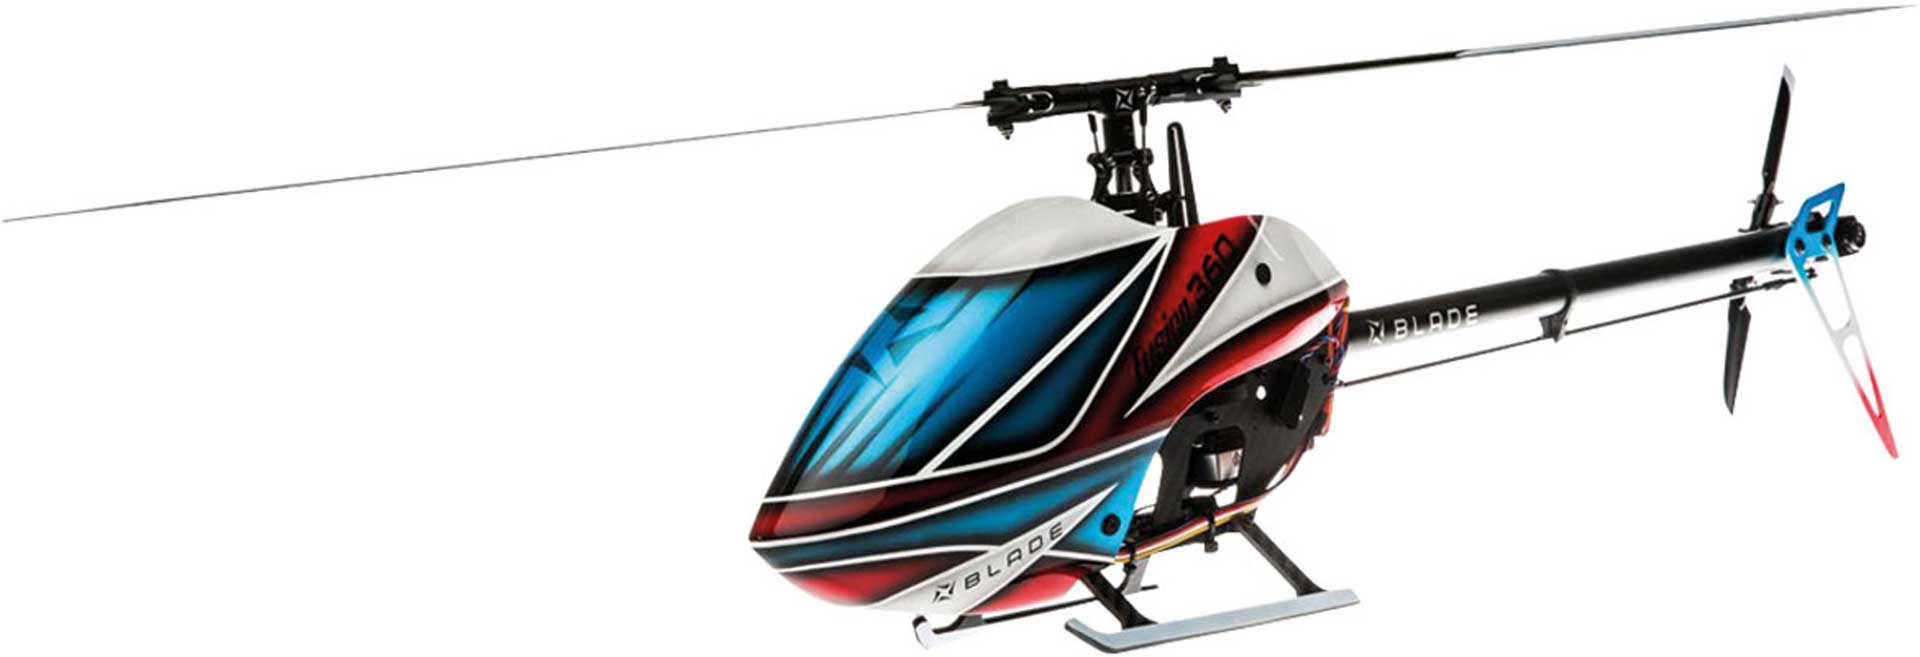 BLADE FUSION 360 BNF BASIC FLYBARLESS HELI Hubschrauber / Helikopter